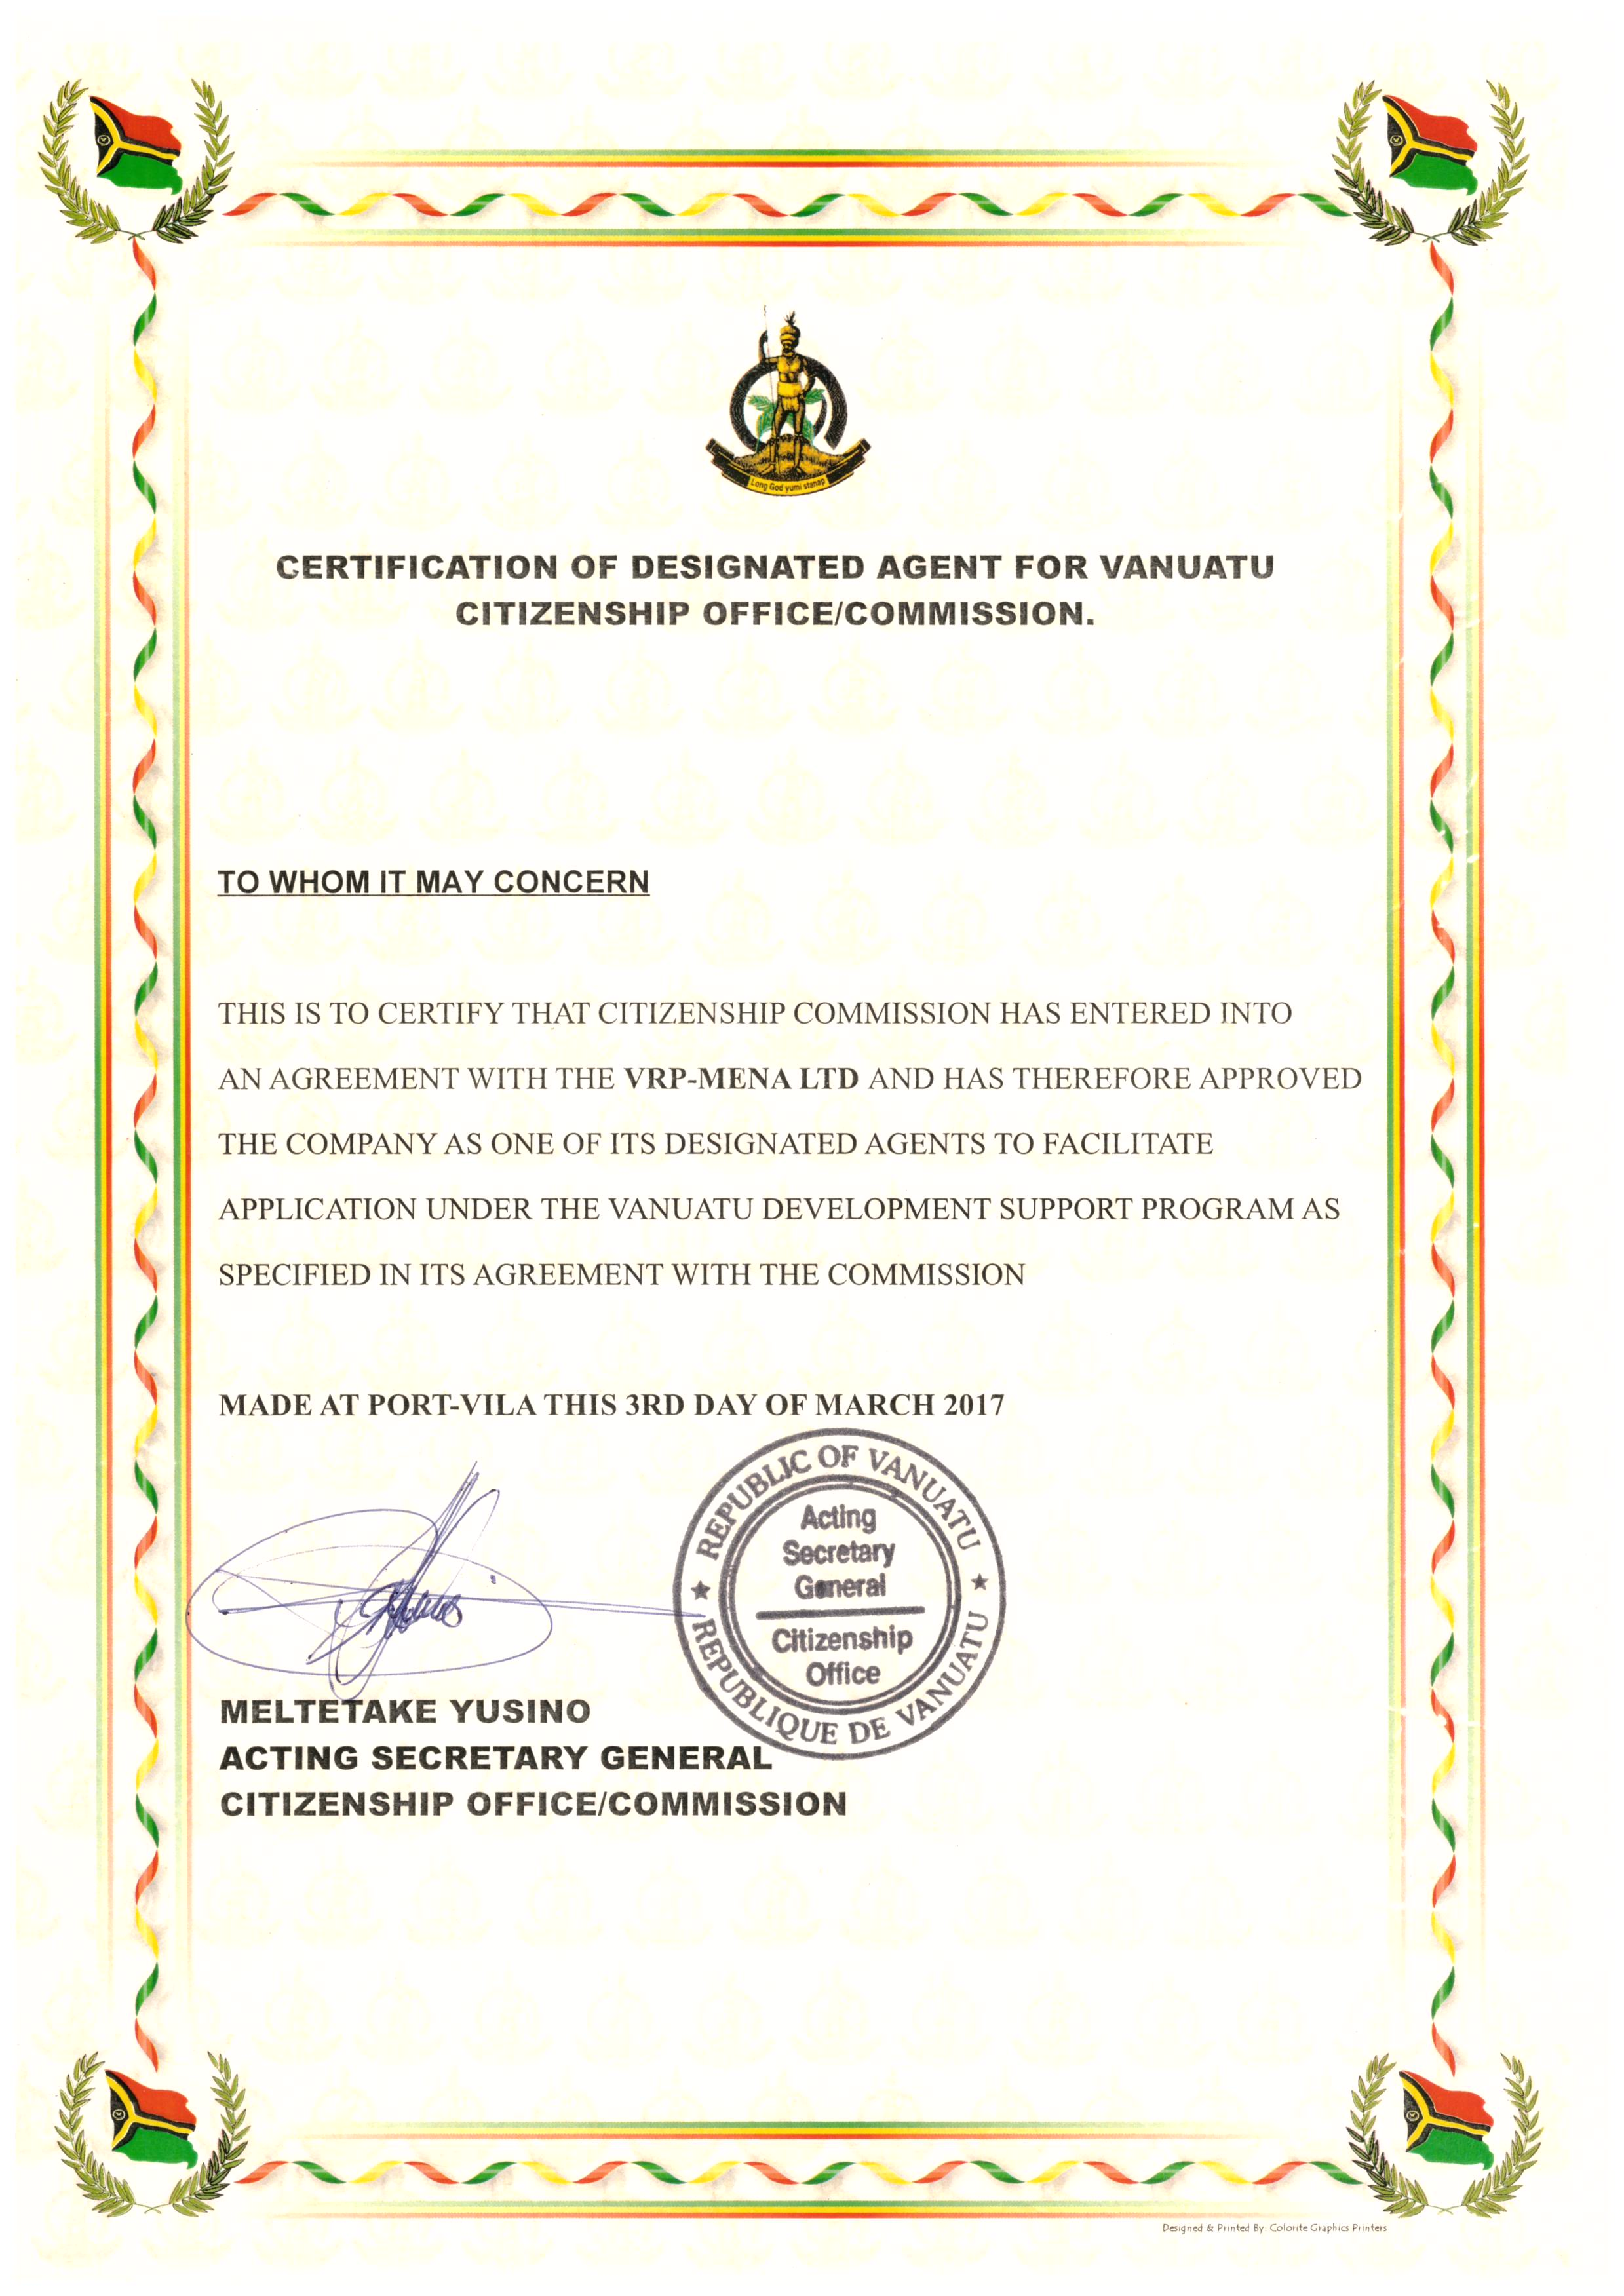 CERTIFICATION FROM VANUATU CITIZENSHIP OFFICE COMMISSION